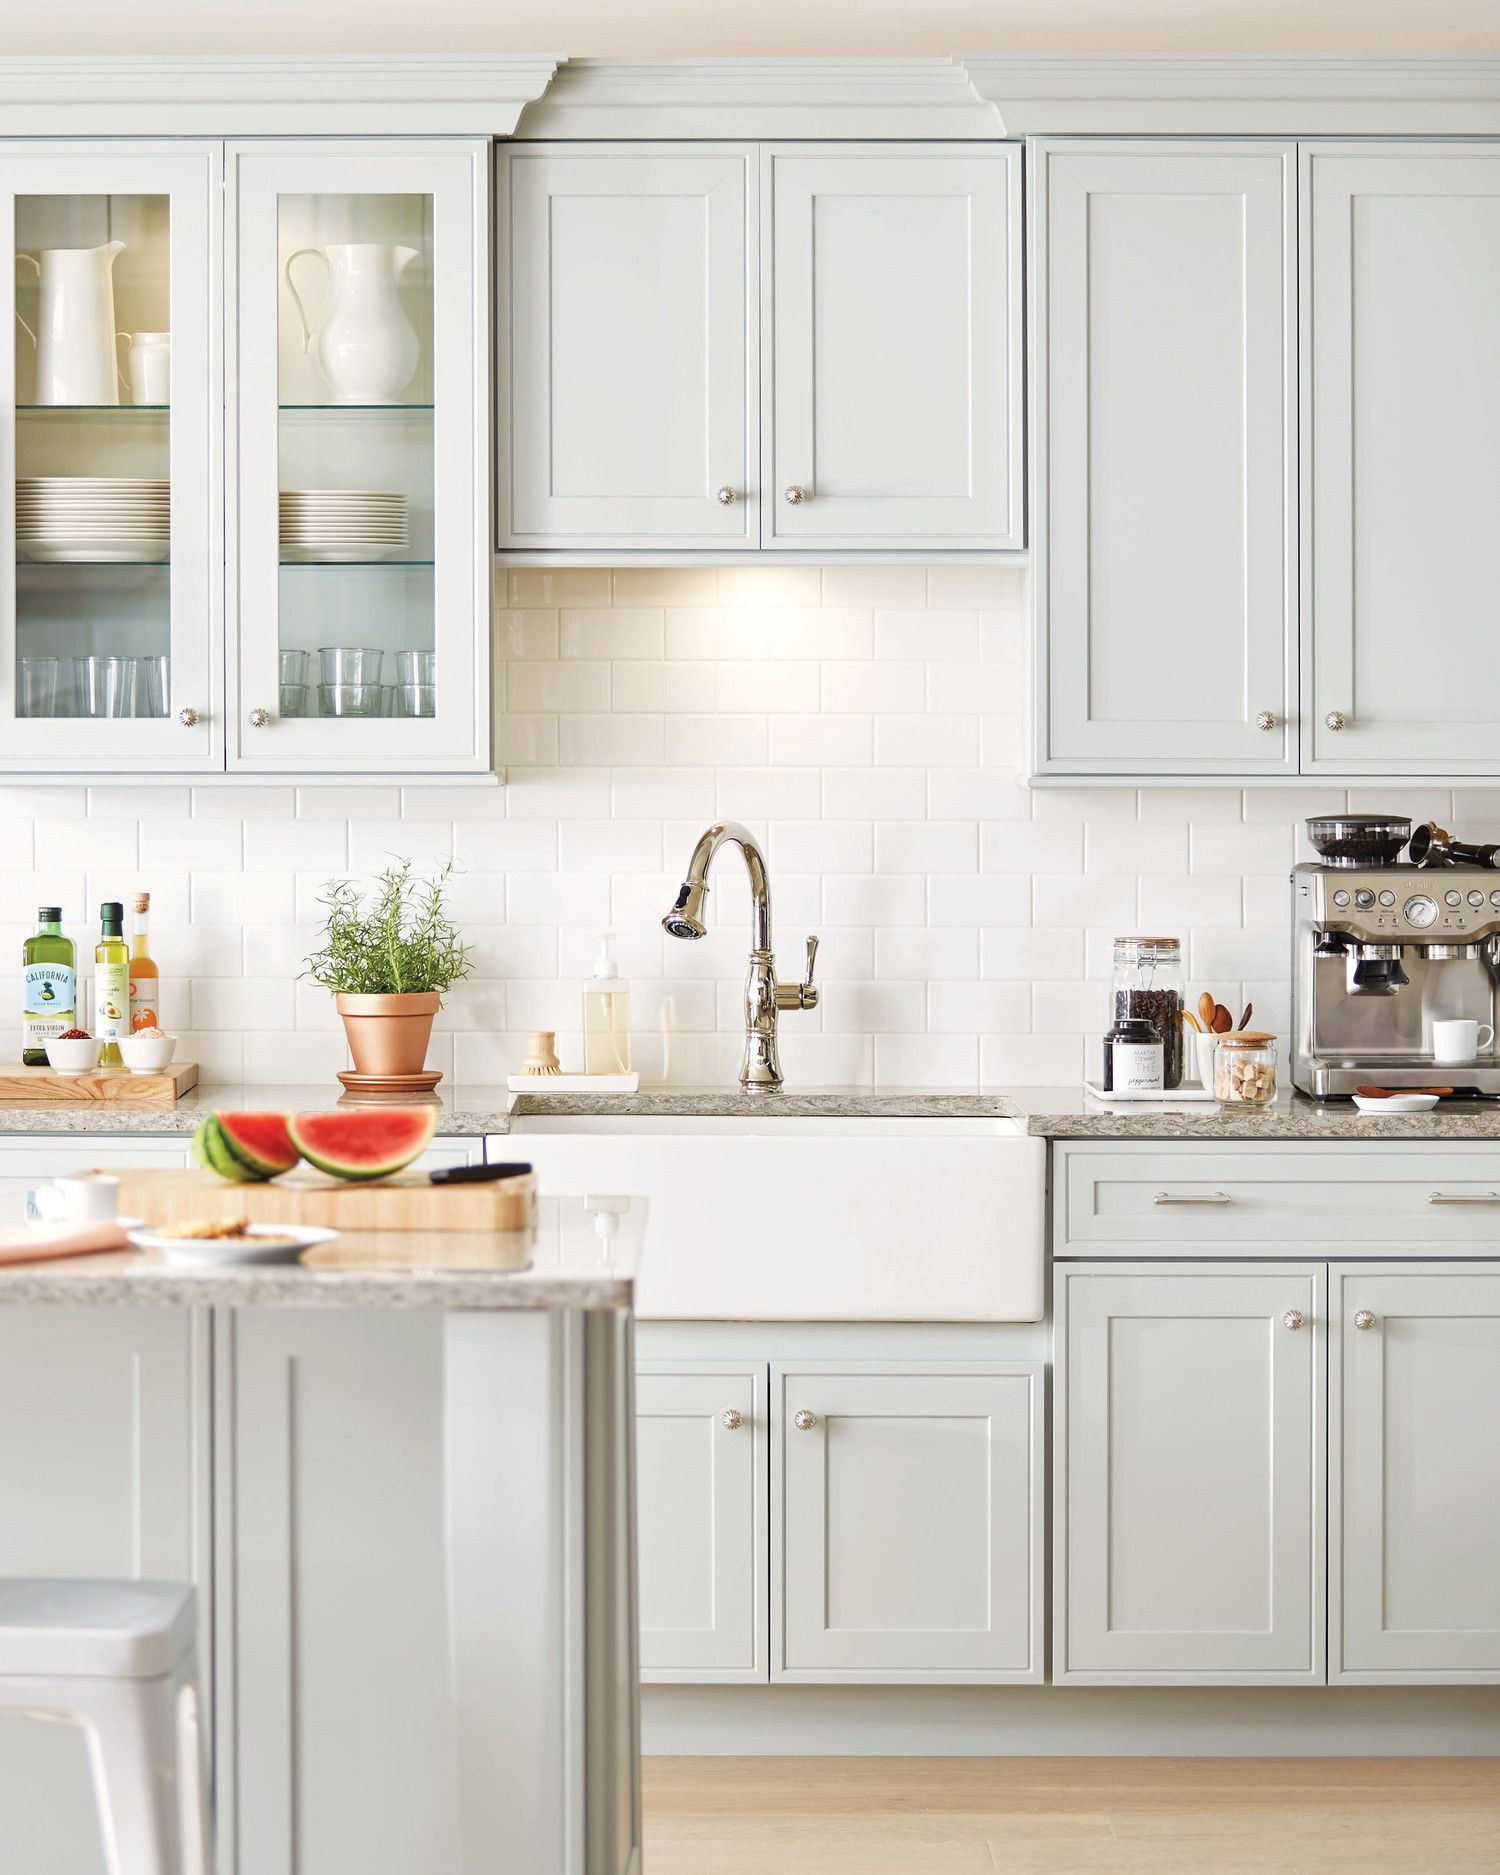 13 Common Kitchen Renovation Mistakes to Avoid | Drawer dividers ...